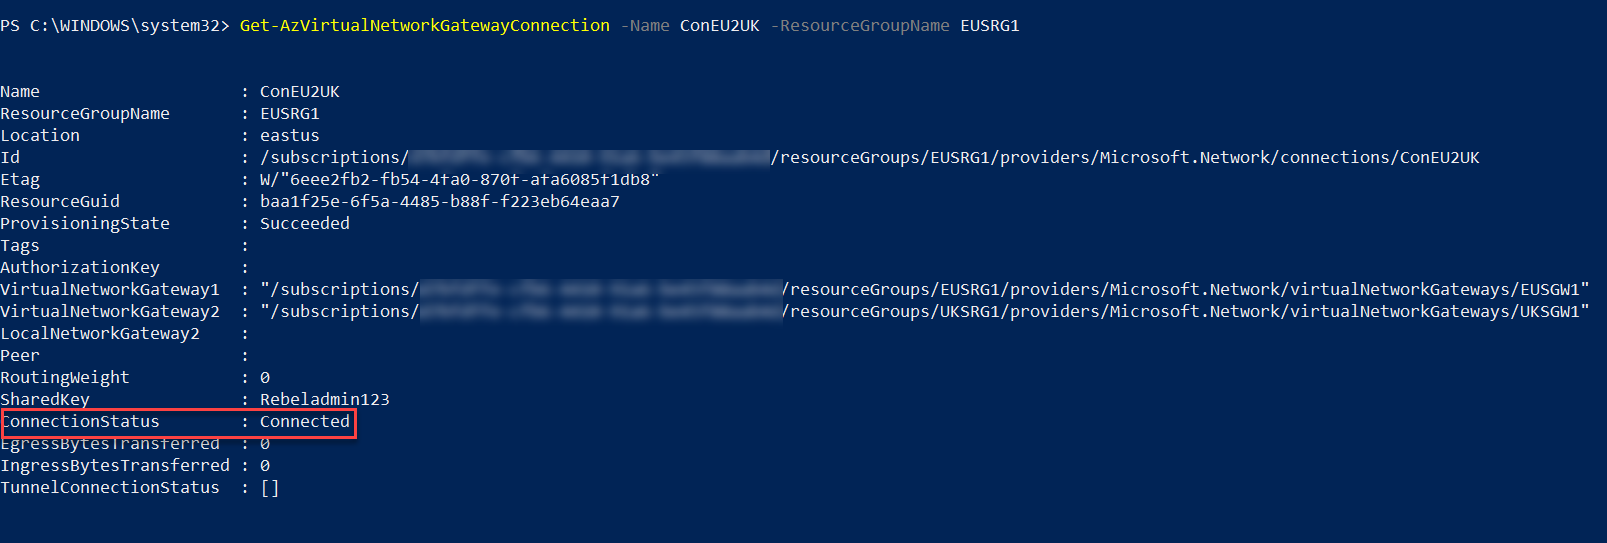 Verify Connection from UKSVnet1 to EUSVnet1